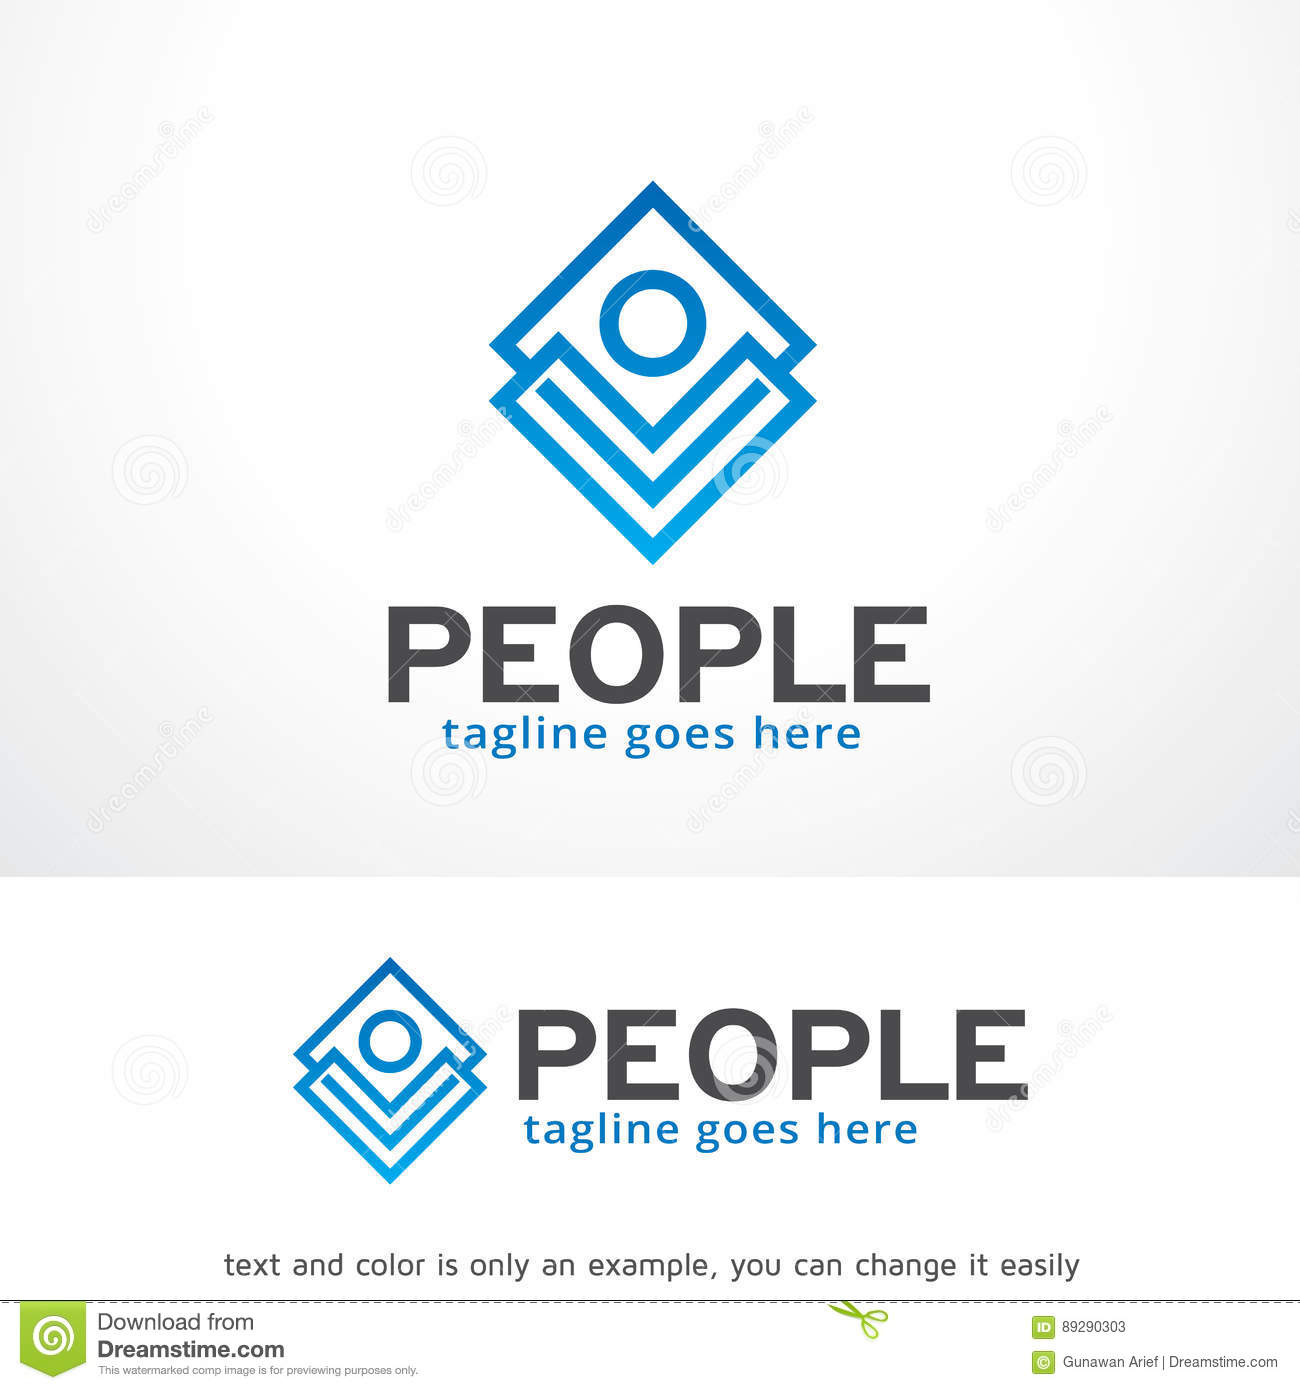 abstract people logo template design vector emblem design abstract people logo template design vector emblem design concept creative symbol icon